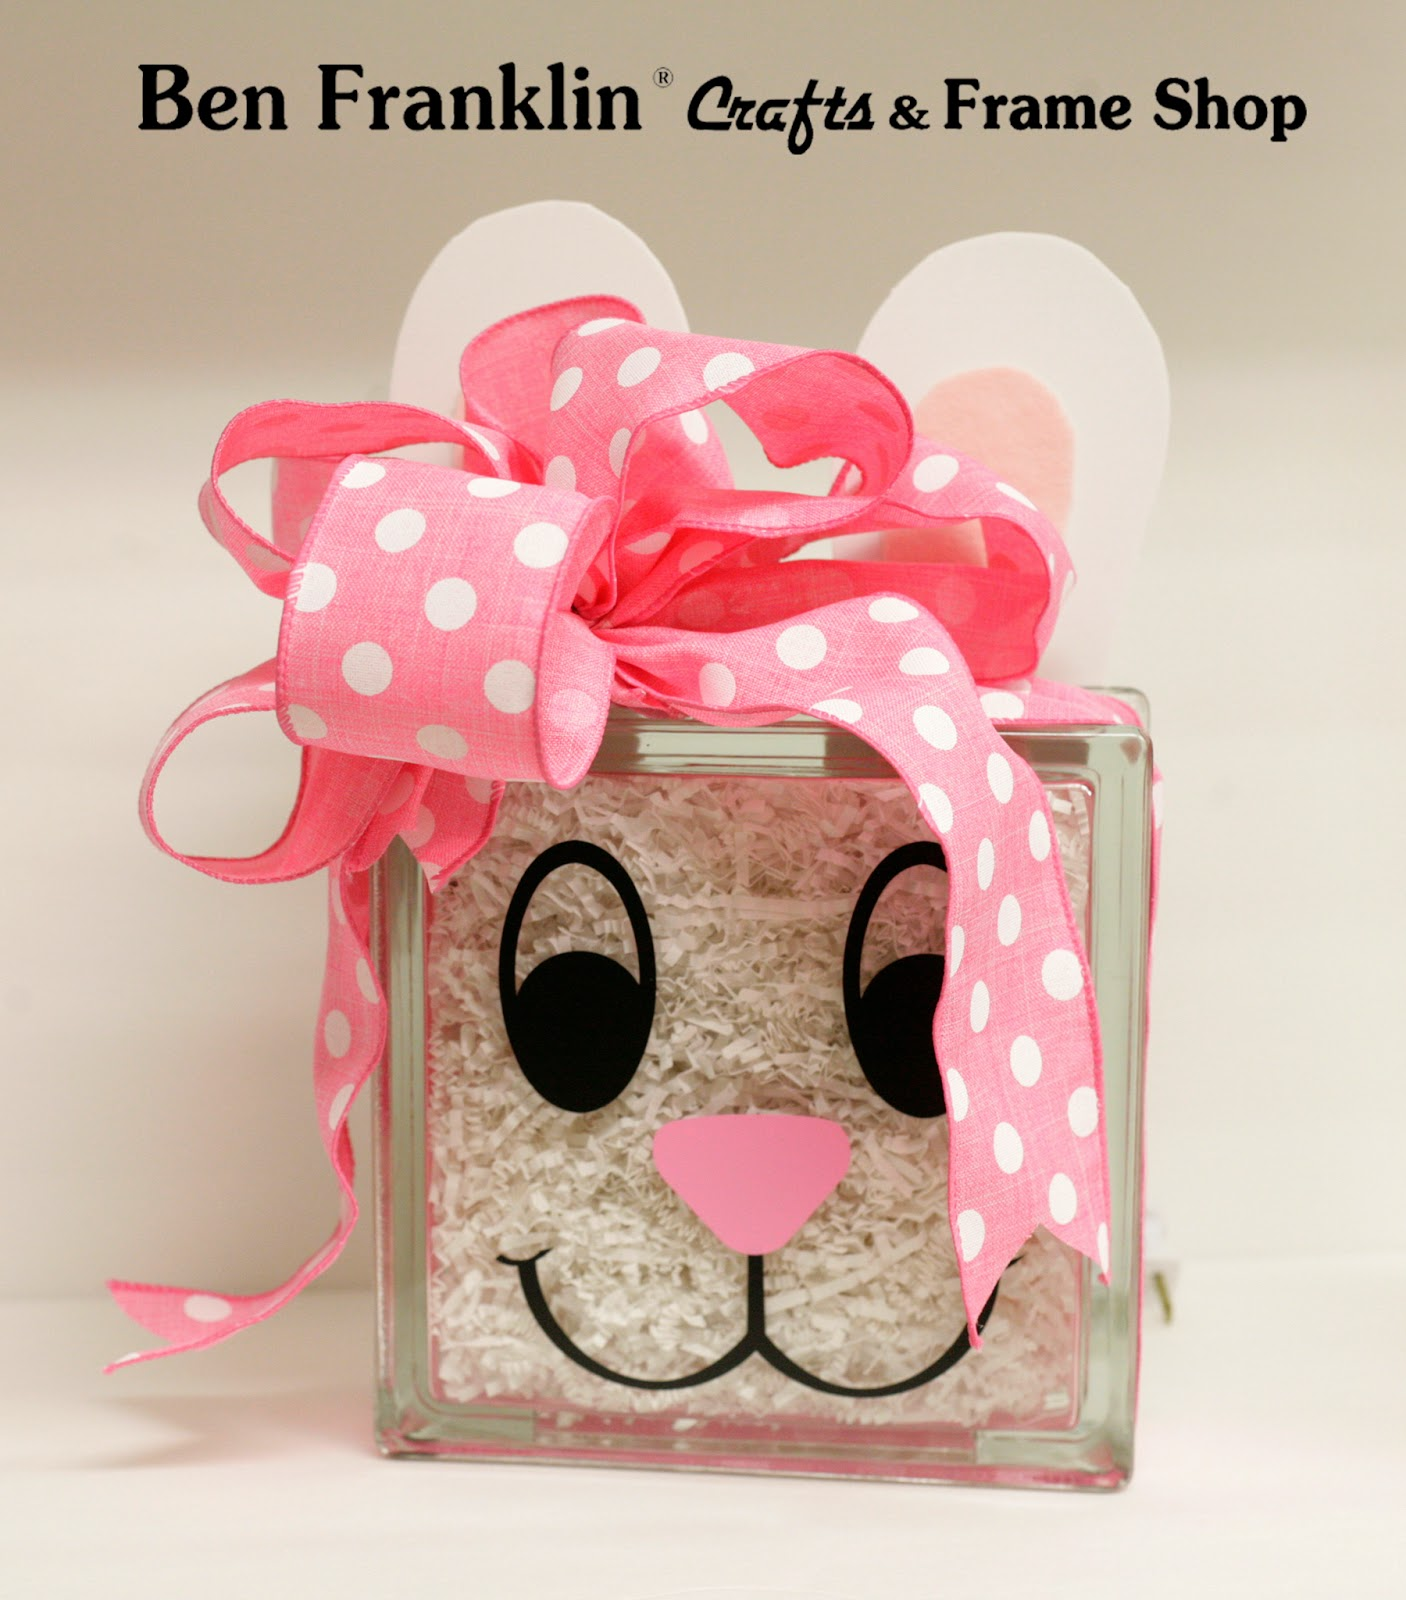 Glass block crafts projects - Glass Block Bunny